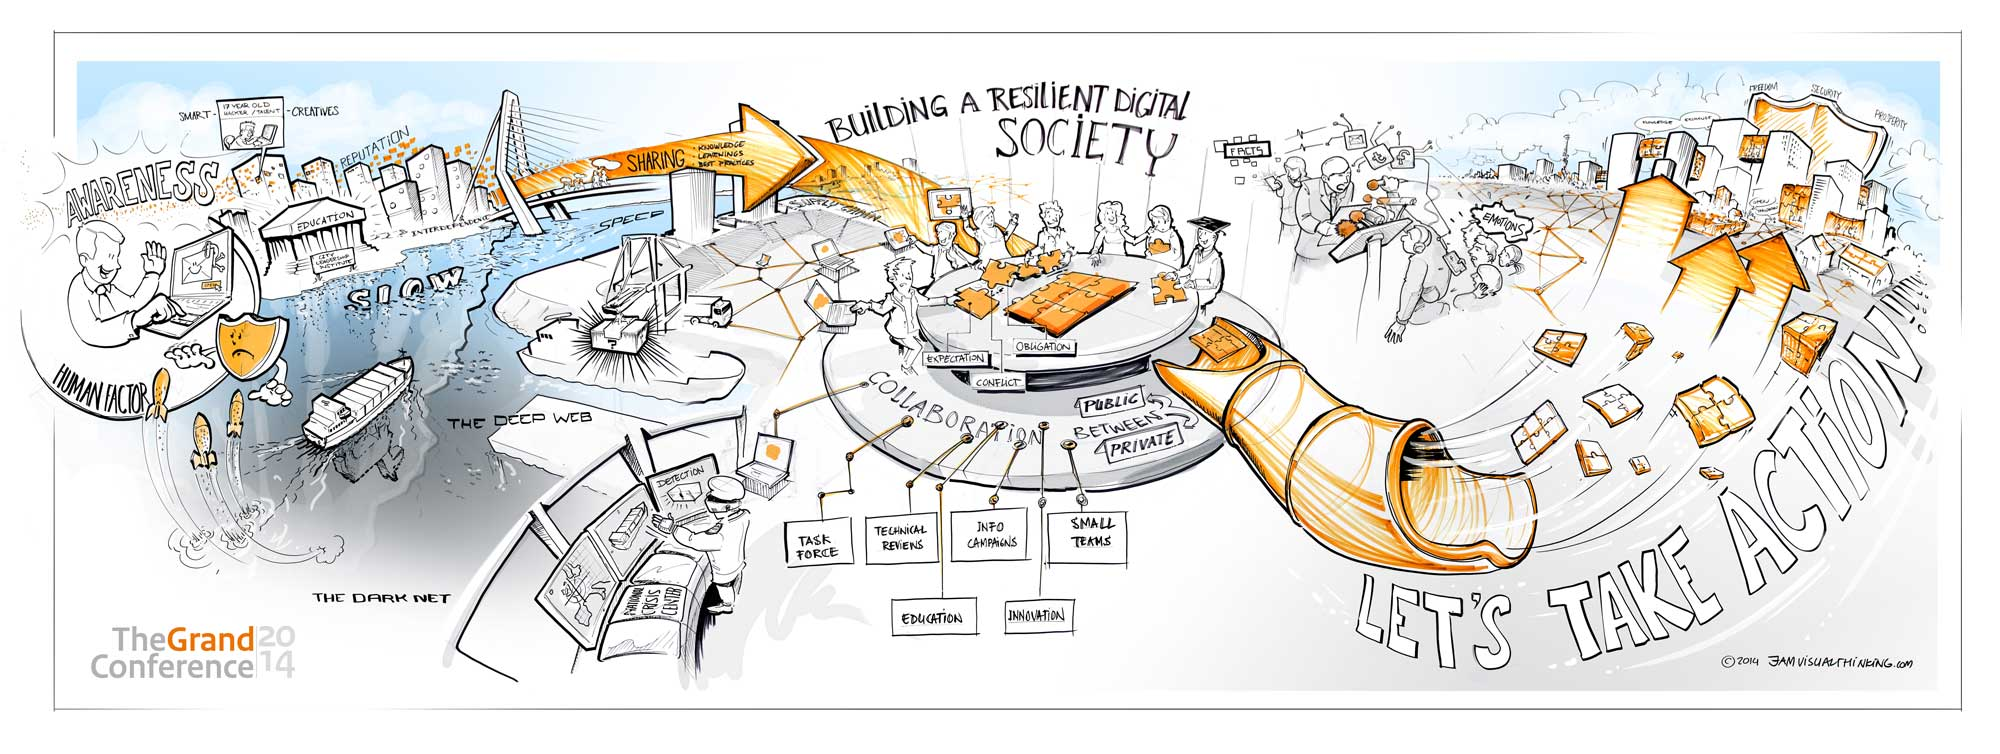 Visuele samenvatting voor The Grand Conference 2014